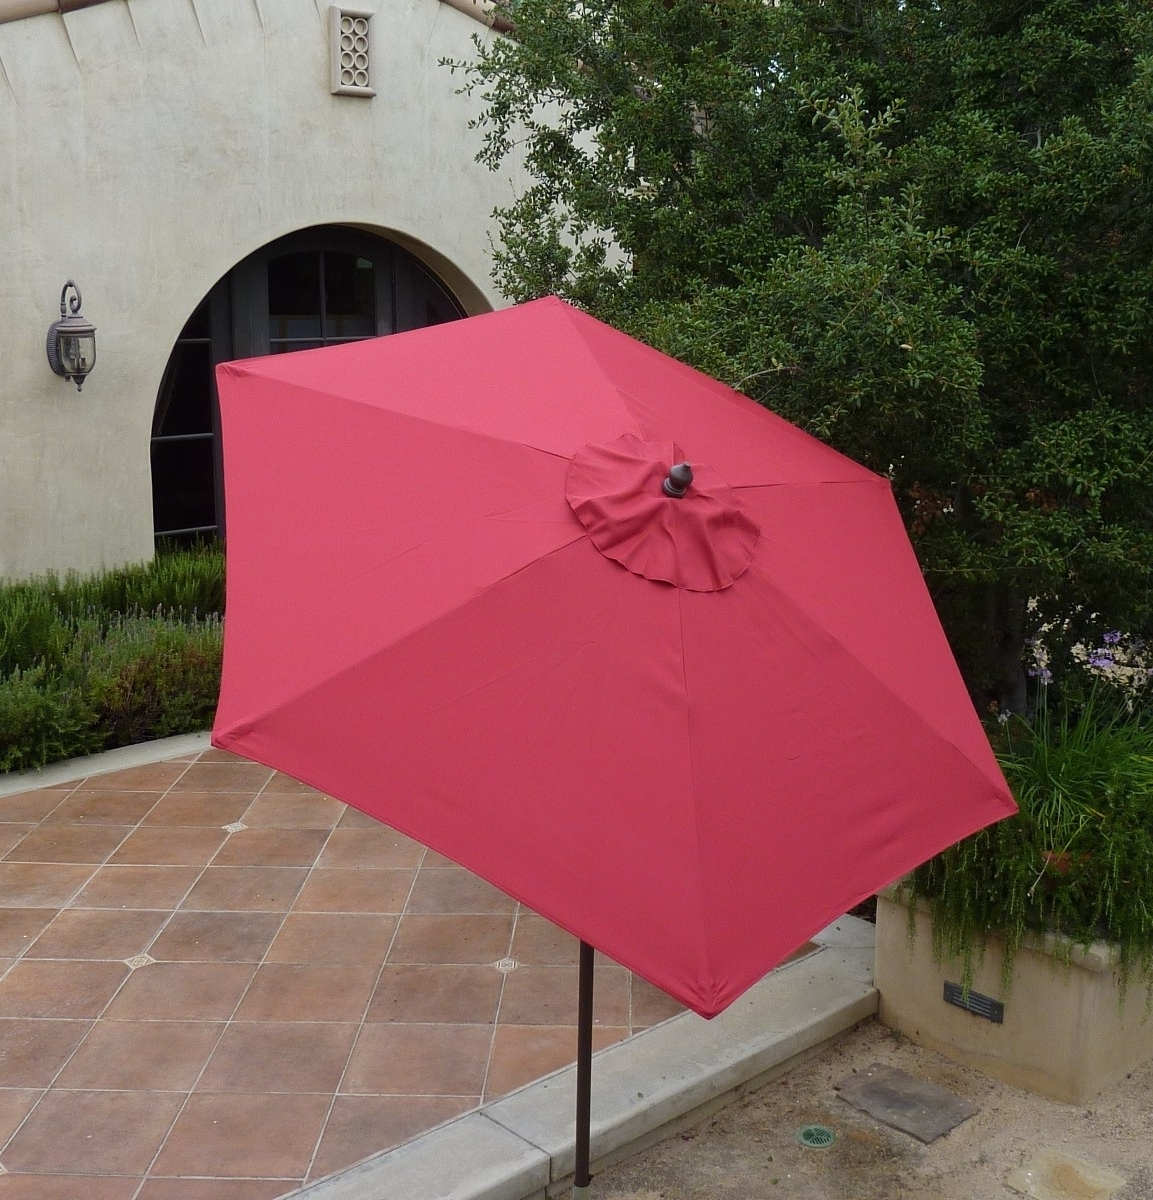 Most Recently Released Pink Patio Umbrellas Intended For 54 Pink Patio Umbrella, 6 Awesome Patio Umbrellas Excellence At Home (View 9 of 20)